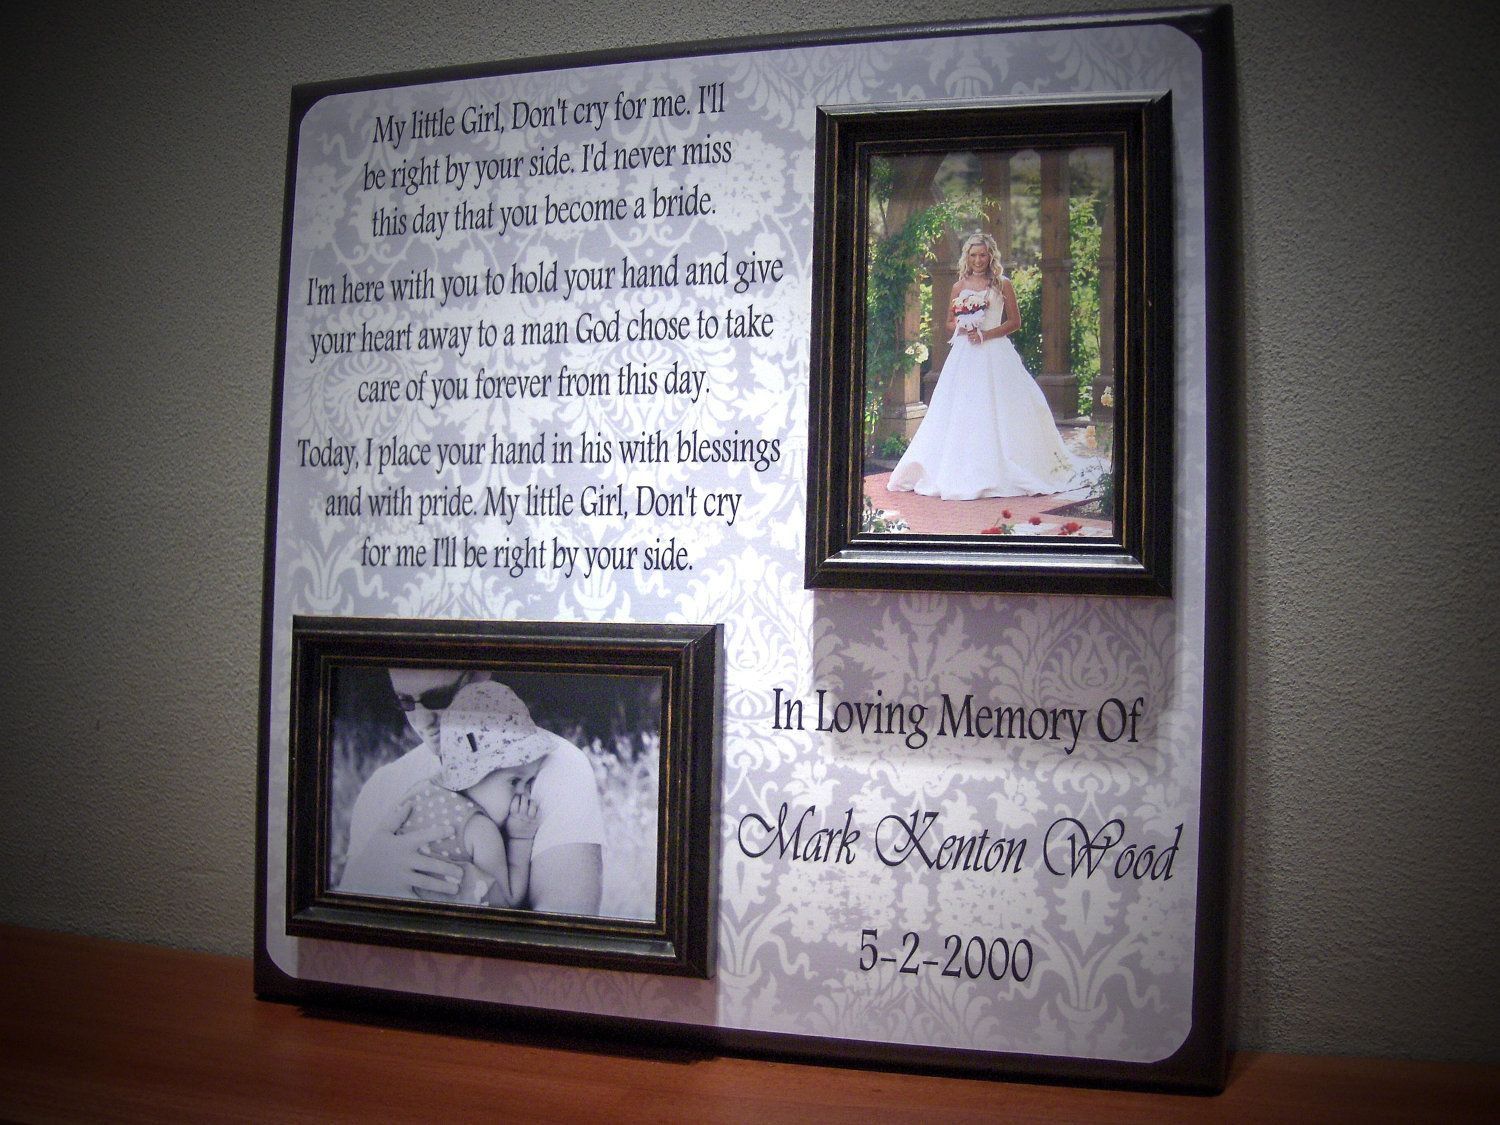 Remembrance of dad on wedding in memory of picture frame parent remembrance of dad on wedding in memory of picture frame parent wedding jeuxipadfo Choice Image